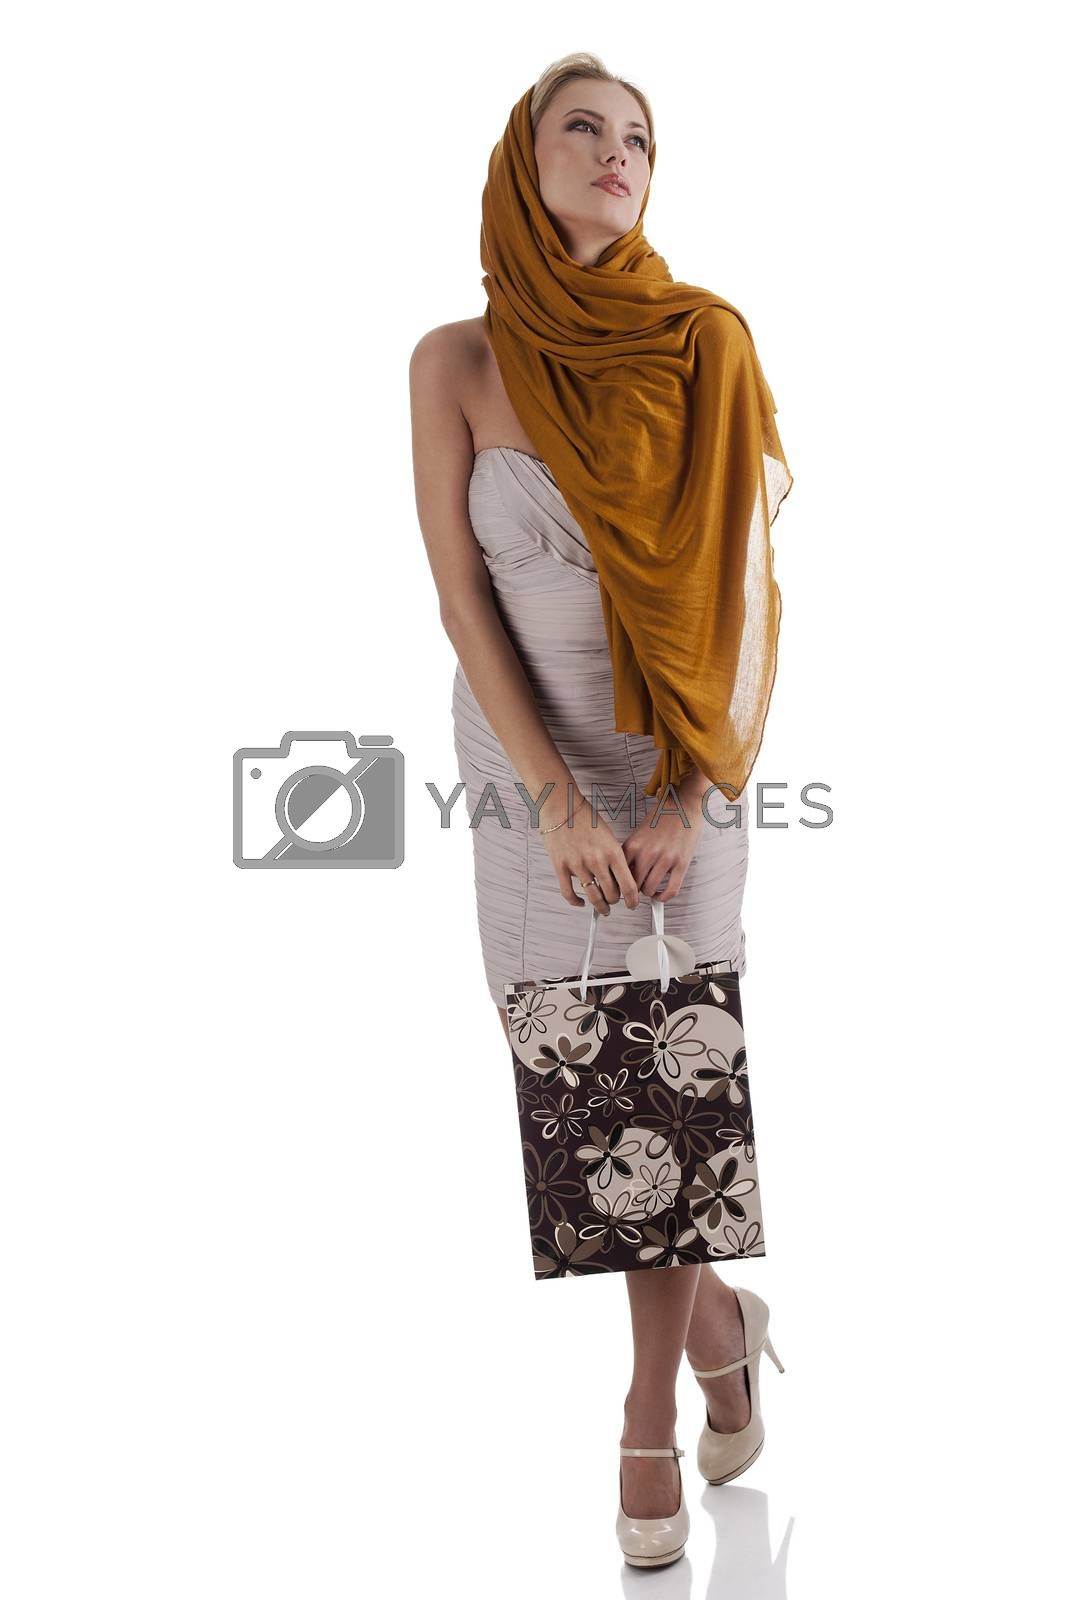 Royalty free image of dreamy elegant fashion girl with shopping bag by fotoCD